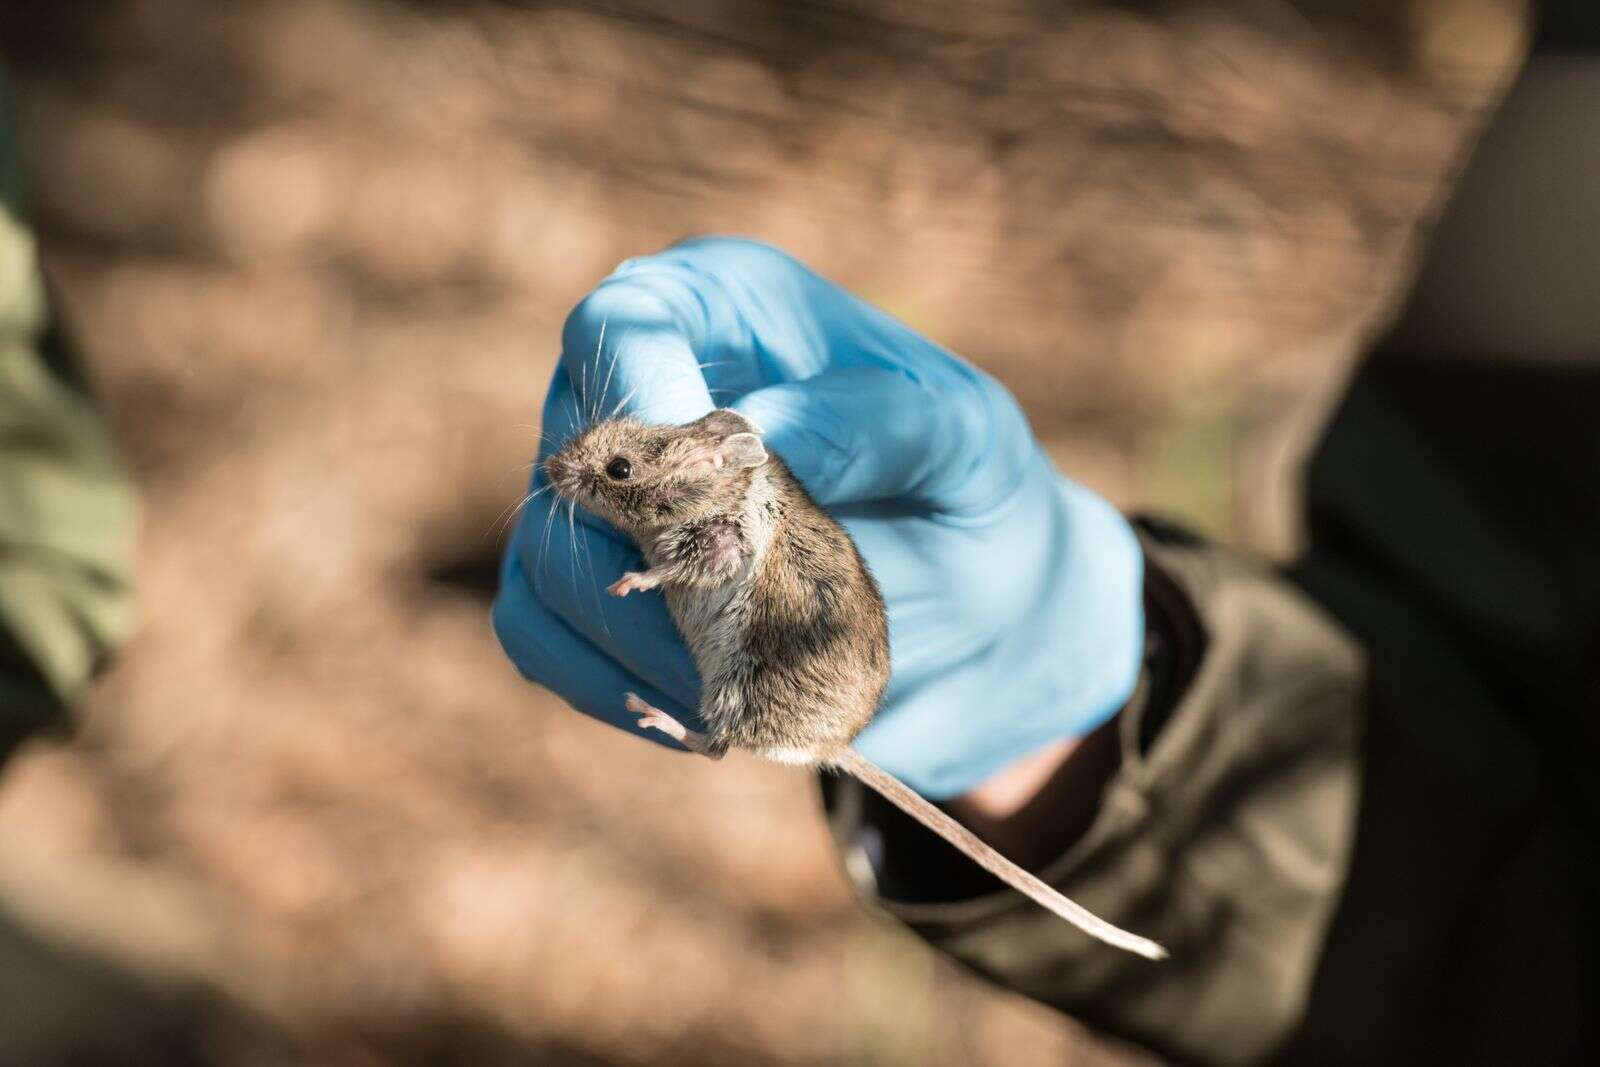 Colorado State University Fish, Wildlife and Conservation Biology student Max Warnock inspect a deer mouse captured during a BioBlitz led by Colorado State University at the Aspen Center for Environmental Studies Hallam Lake Preserve, June 27, 2019, a 25-acre site nestled in downtown Aspen. | William A. Cotton/CSU Photography